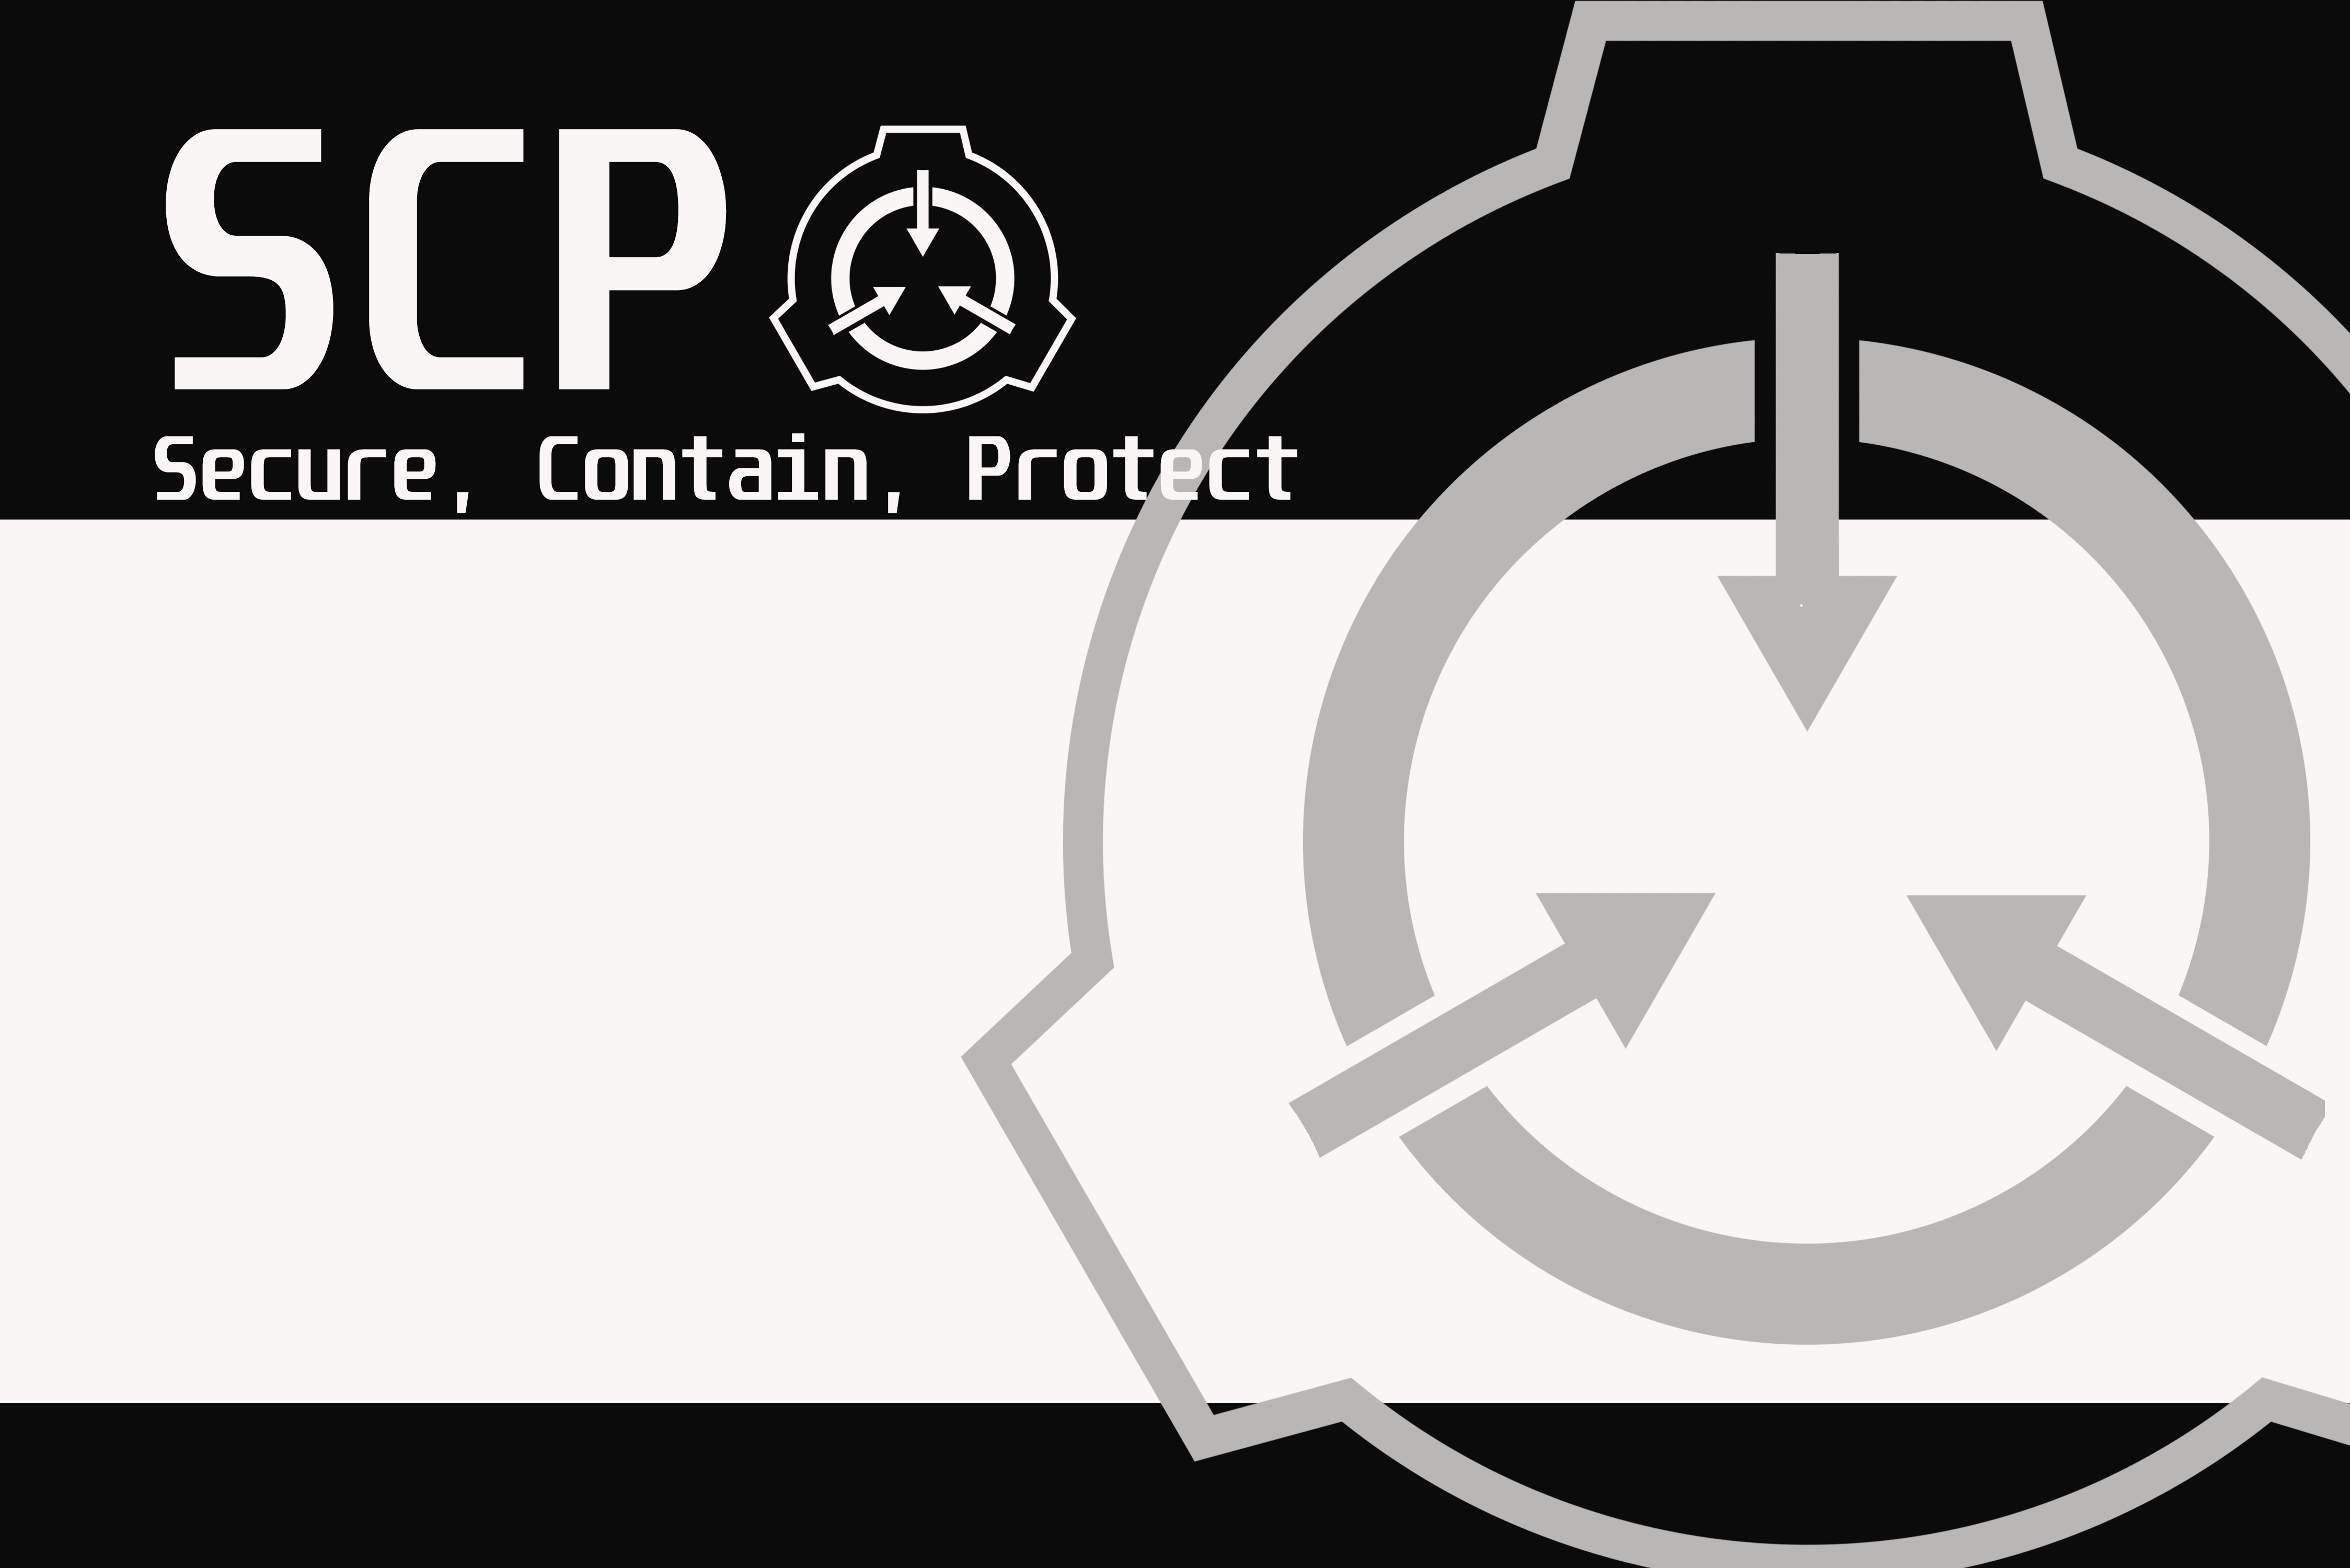 SCP-Ccard-Black-01.png